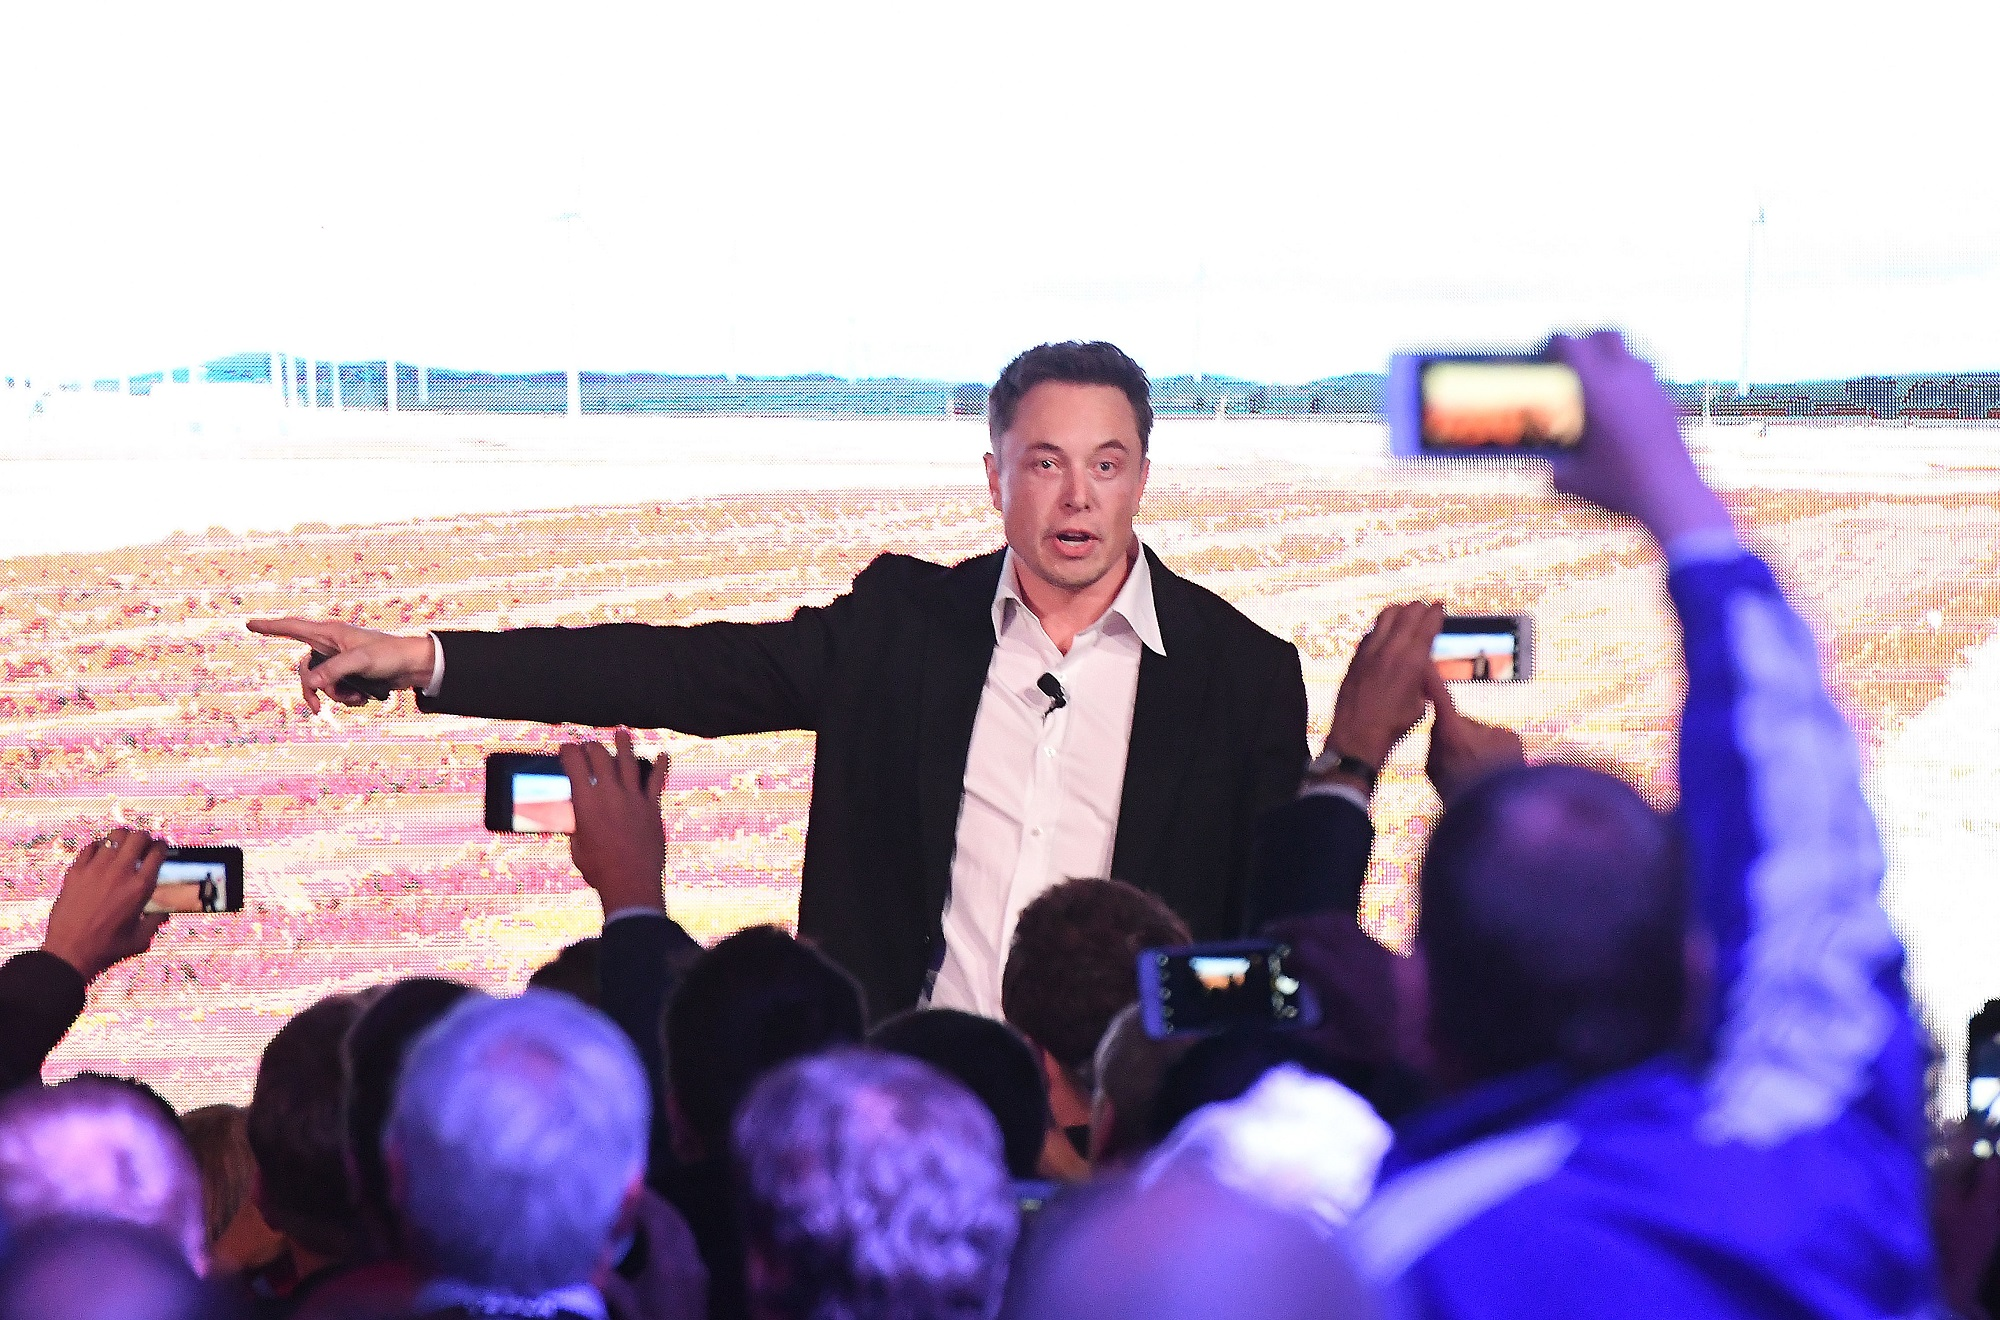 Elon Musk during a presentation at the Tesla Powerpack Launch Event at Hornsdale Wind Farm on Sept. 29, 2017 in Adelaide, Australia. Apparently the Tesla's terms and condition forgo Dr. Seuss. (Mark Brake/Getty Images)